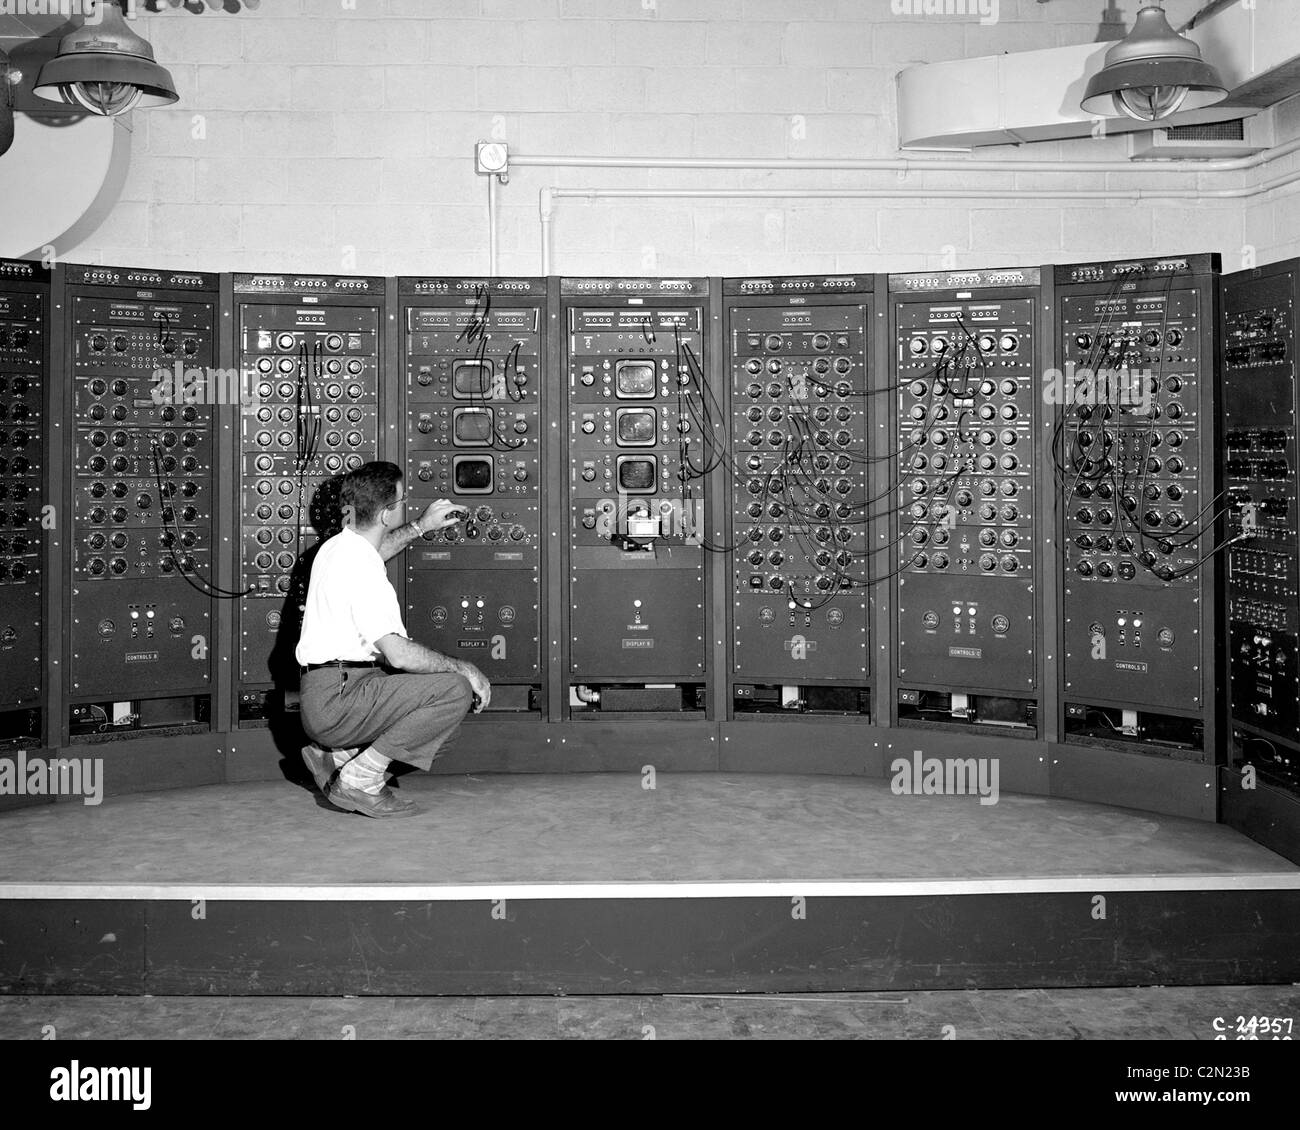 Analog Computing-Maschine, eine frühe Version des modernen Computers. Stockbild